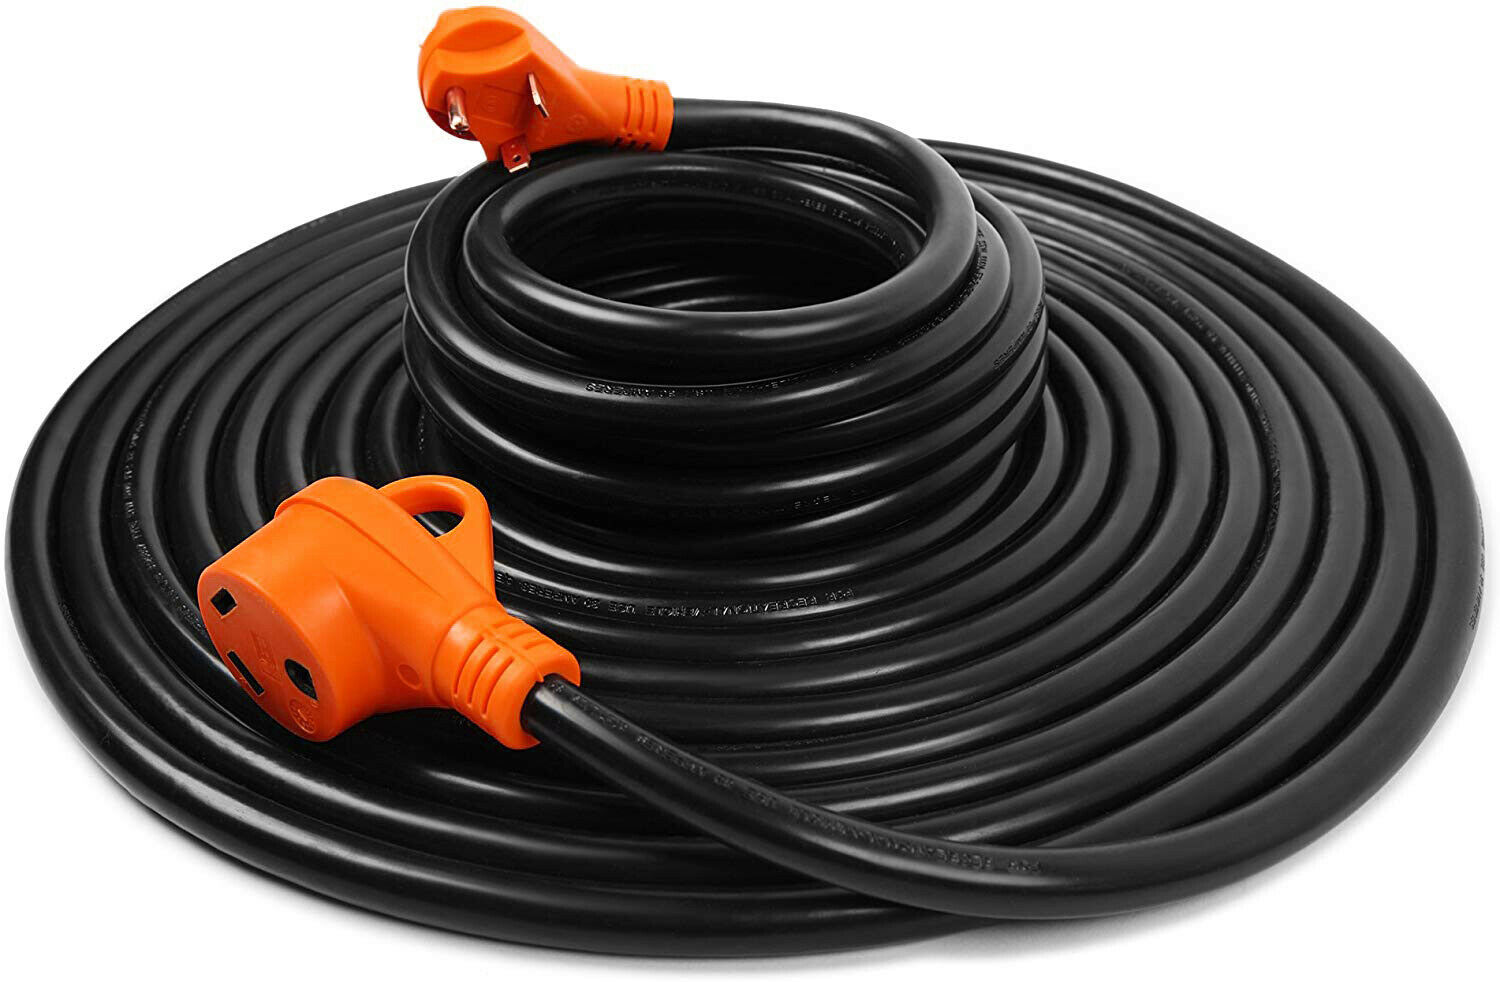 RV Extension Power Cord 50FT with Handles – 30 AMP Male to 30 AMP Female eBay Motors